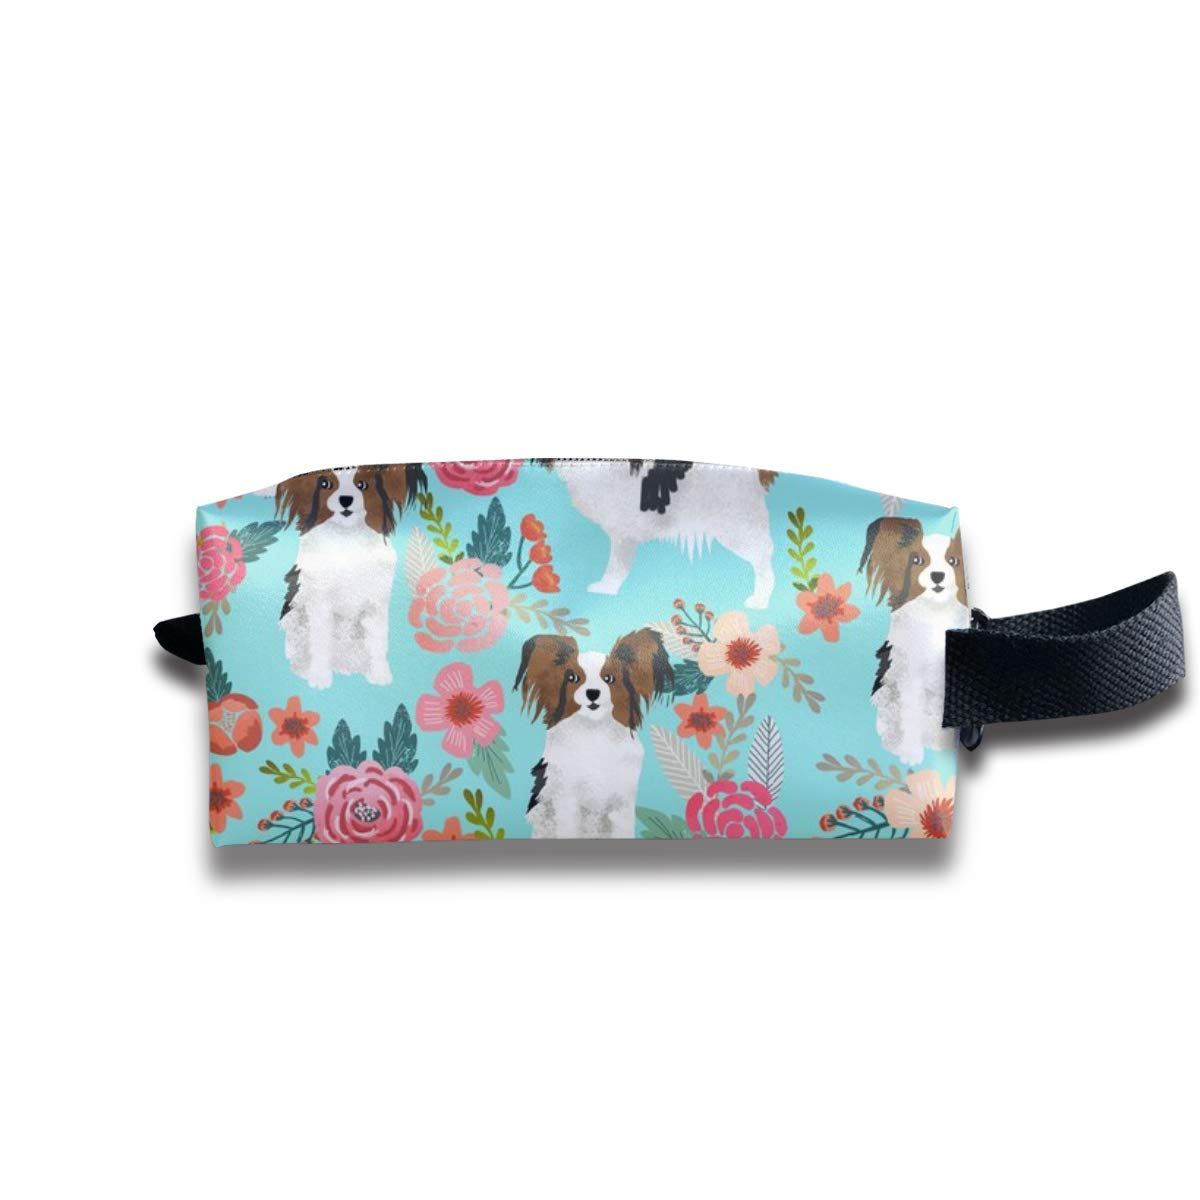 ec9dce57674f Papillons Florals Mint Cute Dog Fabric Toy Spaniels Dogs Cute Toy Breed Dog  Florals Mint Best Pet Papillong Gift_486 Portable Travel Makeup Cosmetic ...